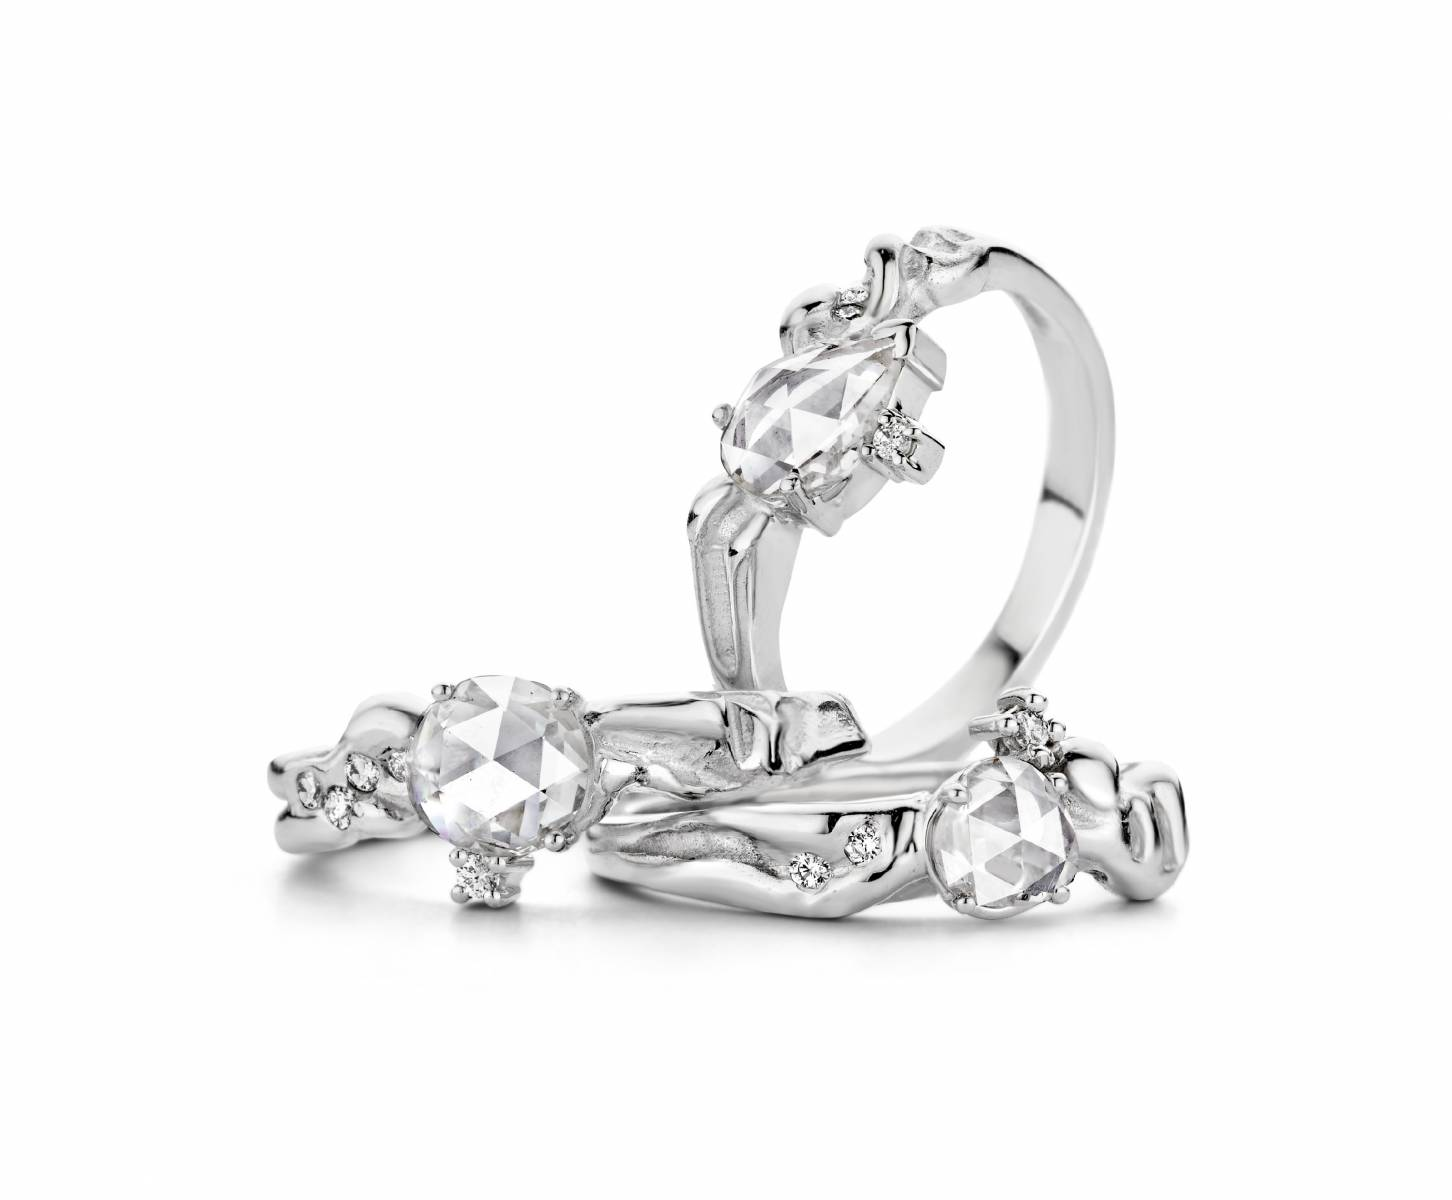 Juwelier Vandromme - Juwelen - Verlovingsring - Trouwring  – House of Weddings - 12